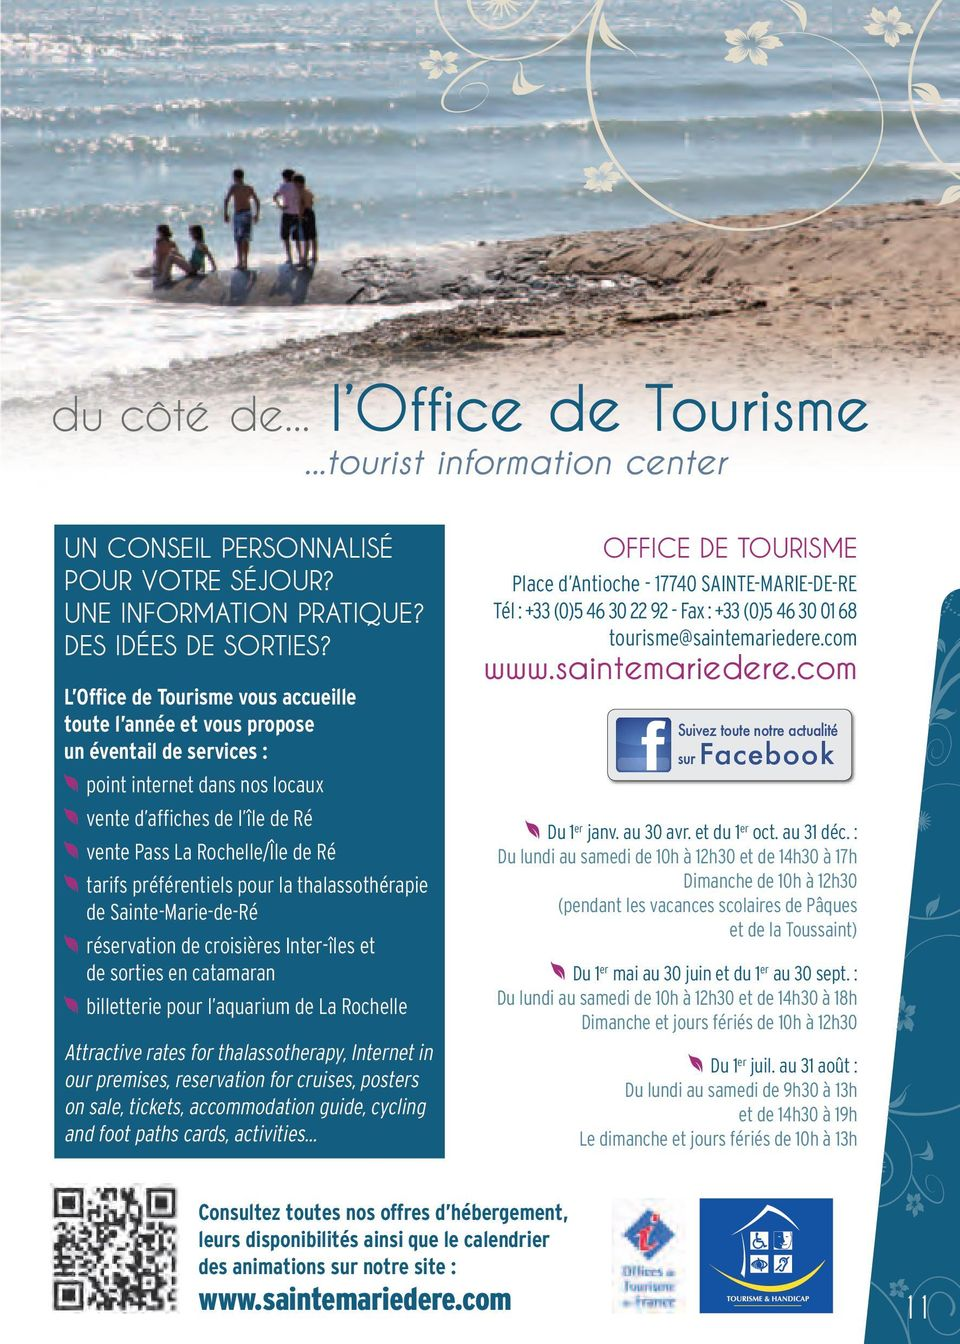 préférentiels pour la thalassothérapie de Sainte-Marie-de-Ré réservation de croisières Inter-îles et de sorties en catamaran billetterie pour l aquarium de La Rochelle Attractive rates for